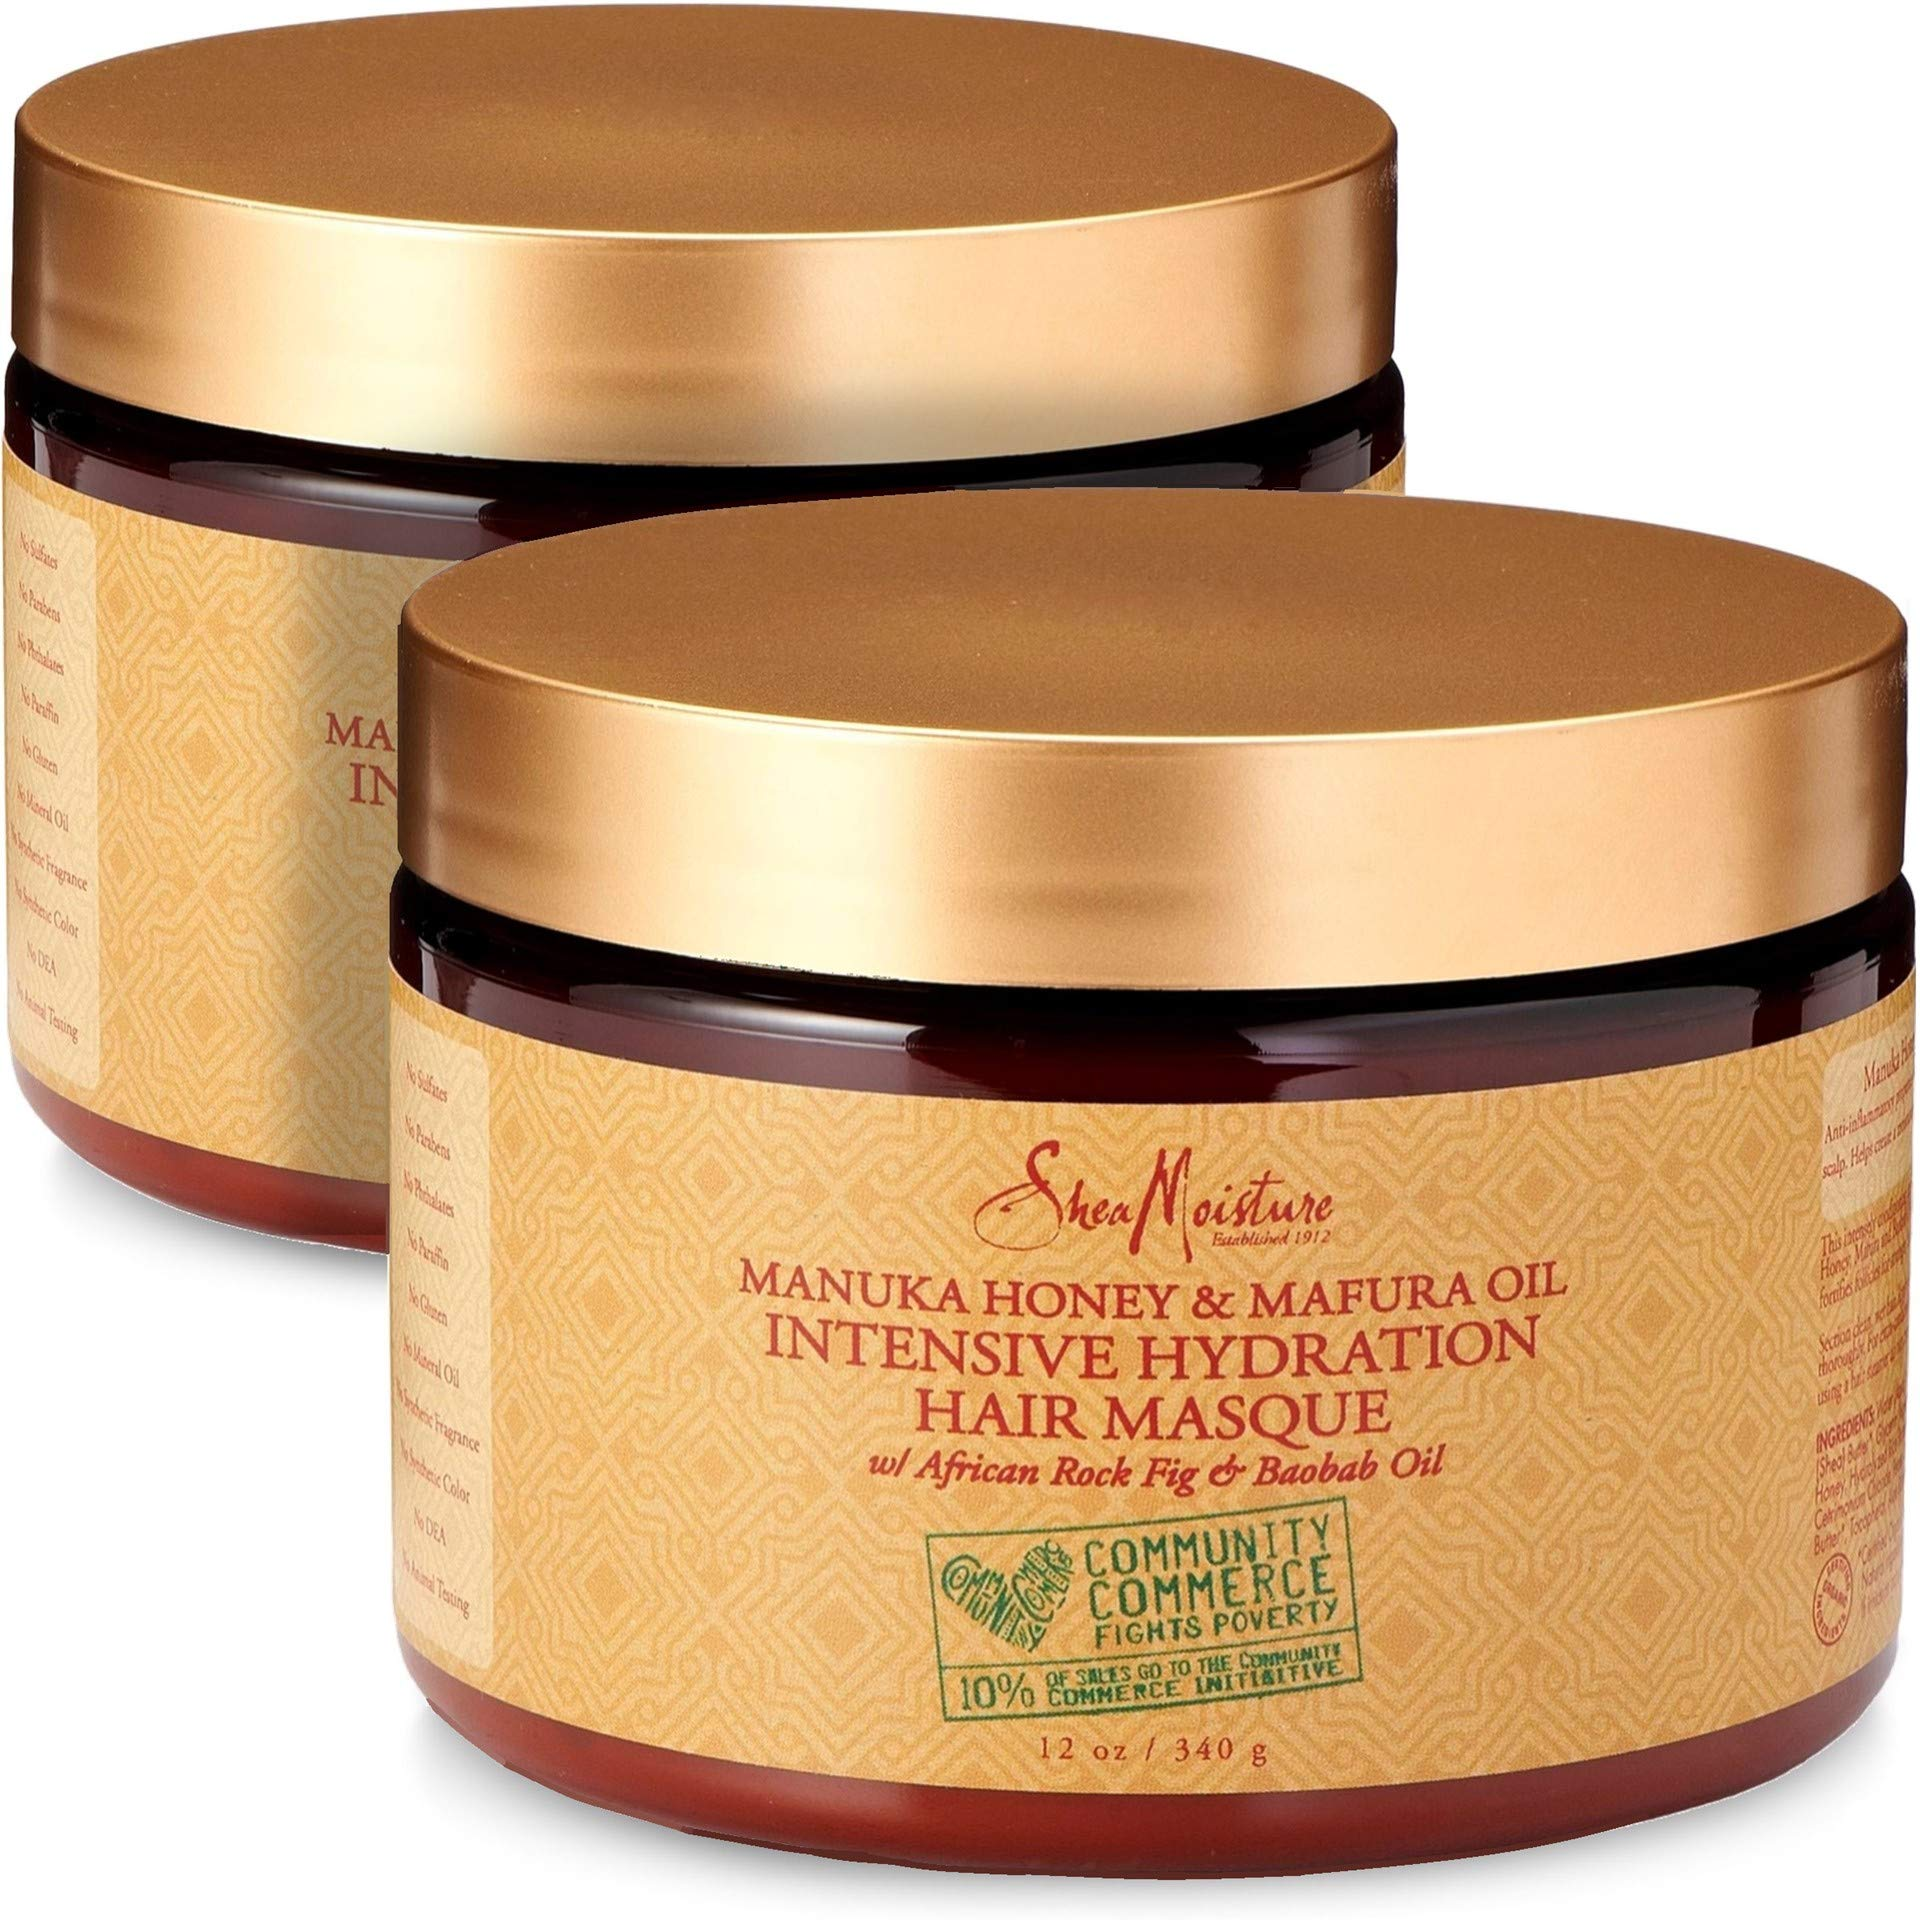 Shea Moisture Manuka Honey & Mafura Oil Intensive Hydration Hair Masque, with African Rock Fig & Baobab Oil, 12 Ounce - 2 pack by Shea Moisture